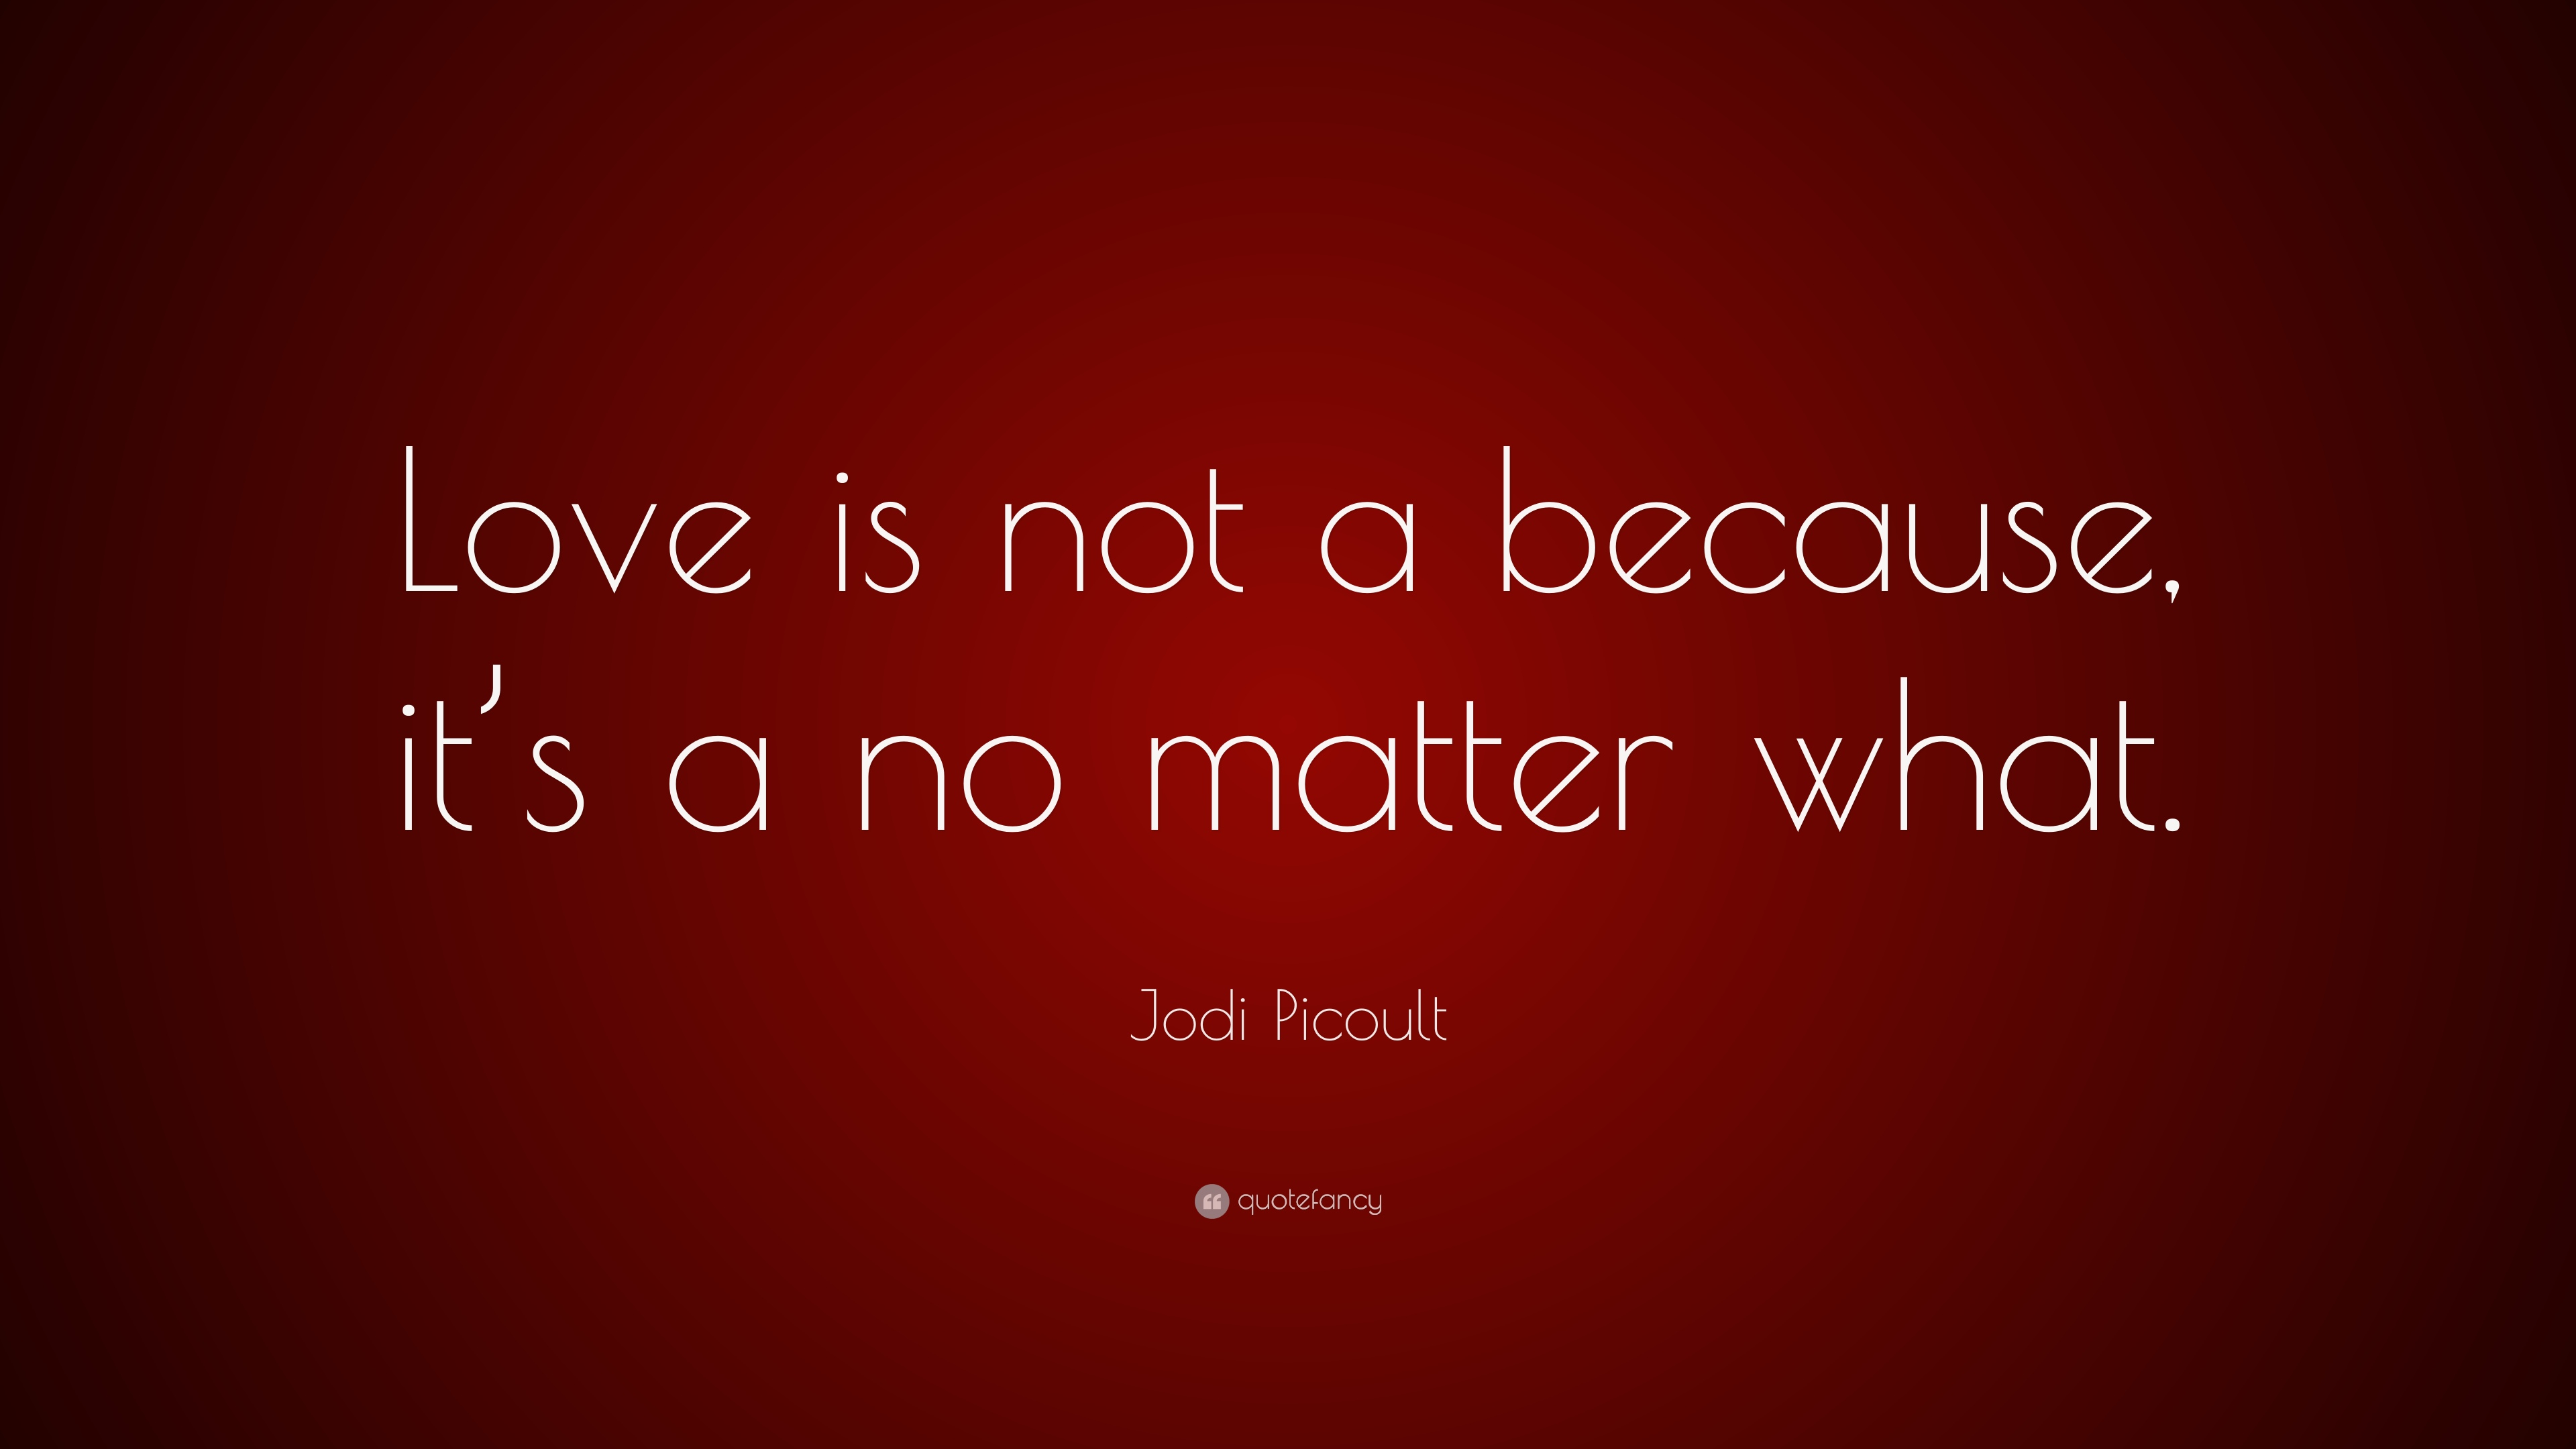 Love Wallpapers Matter : Jodi Picoult Quote: ?Love is not a because, it s a no matter what.? (10 wallpapers) - Quotefancy